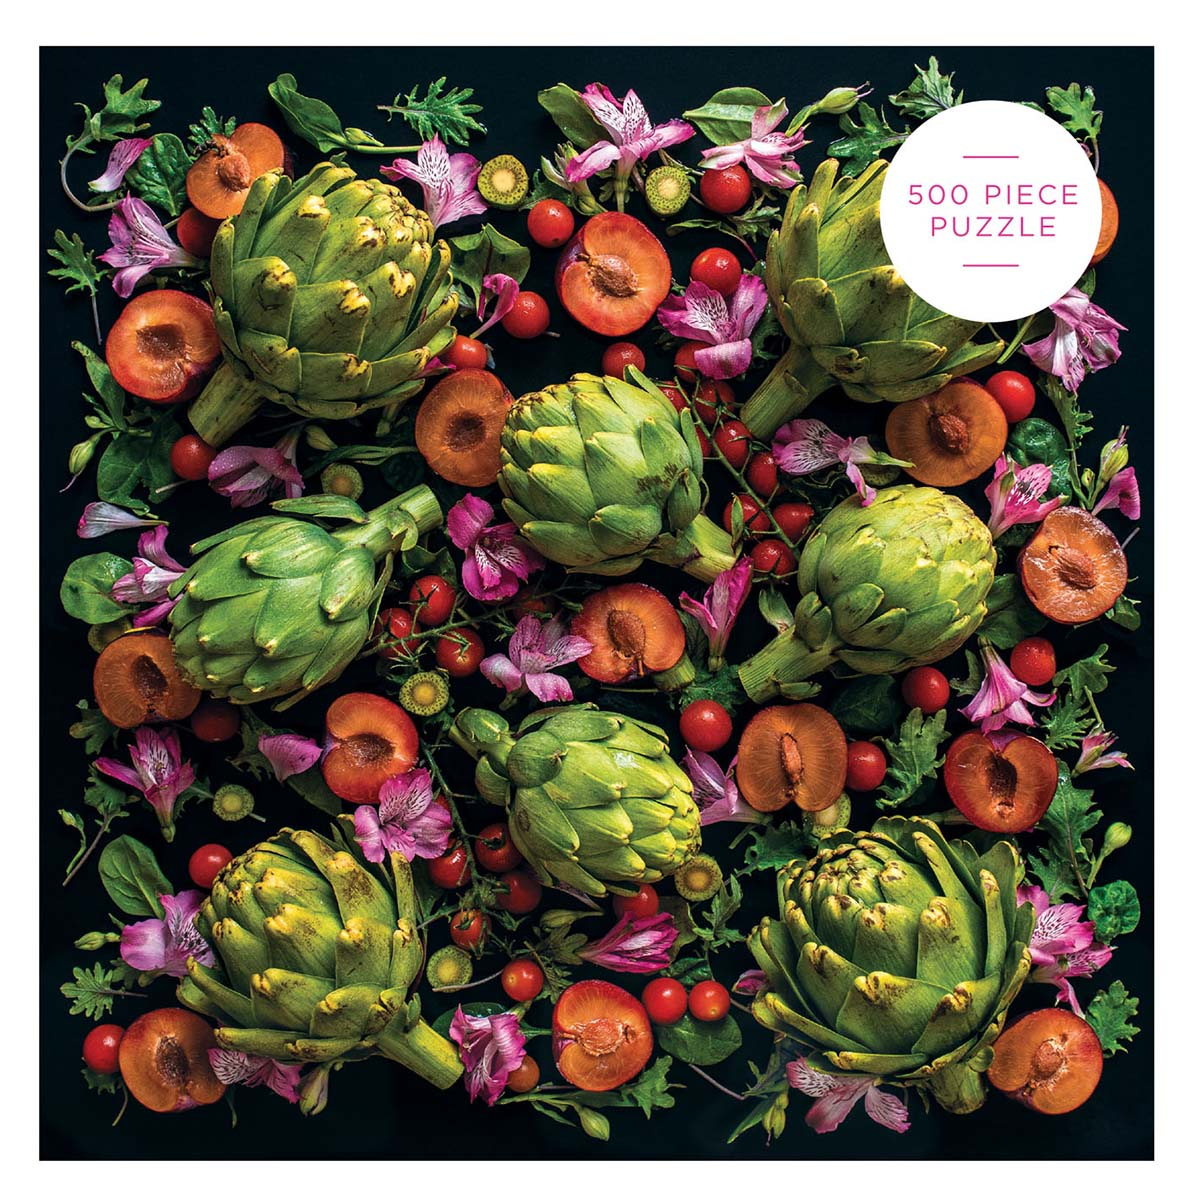 Artichoke Floral Food and Drink Jigsaw Puzzle